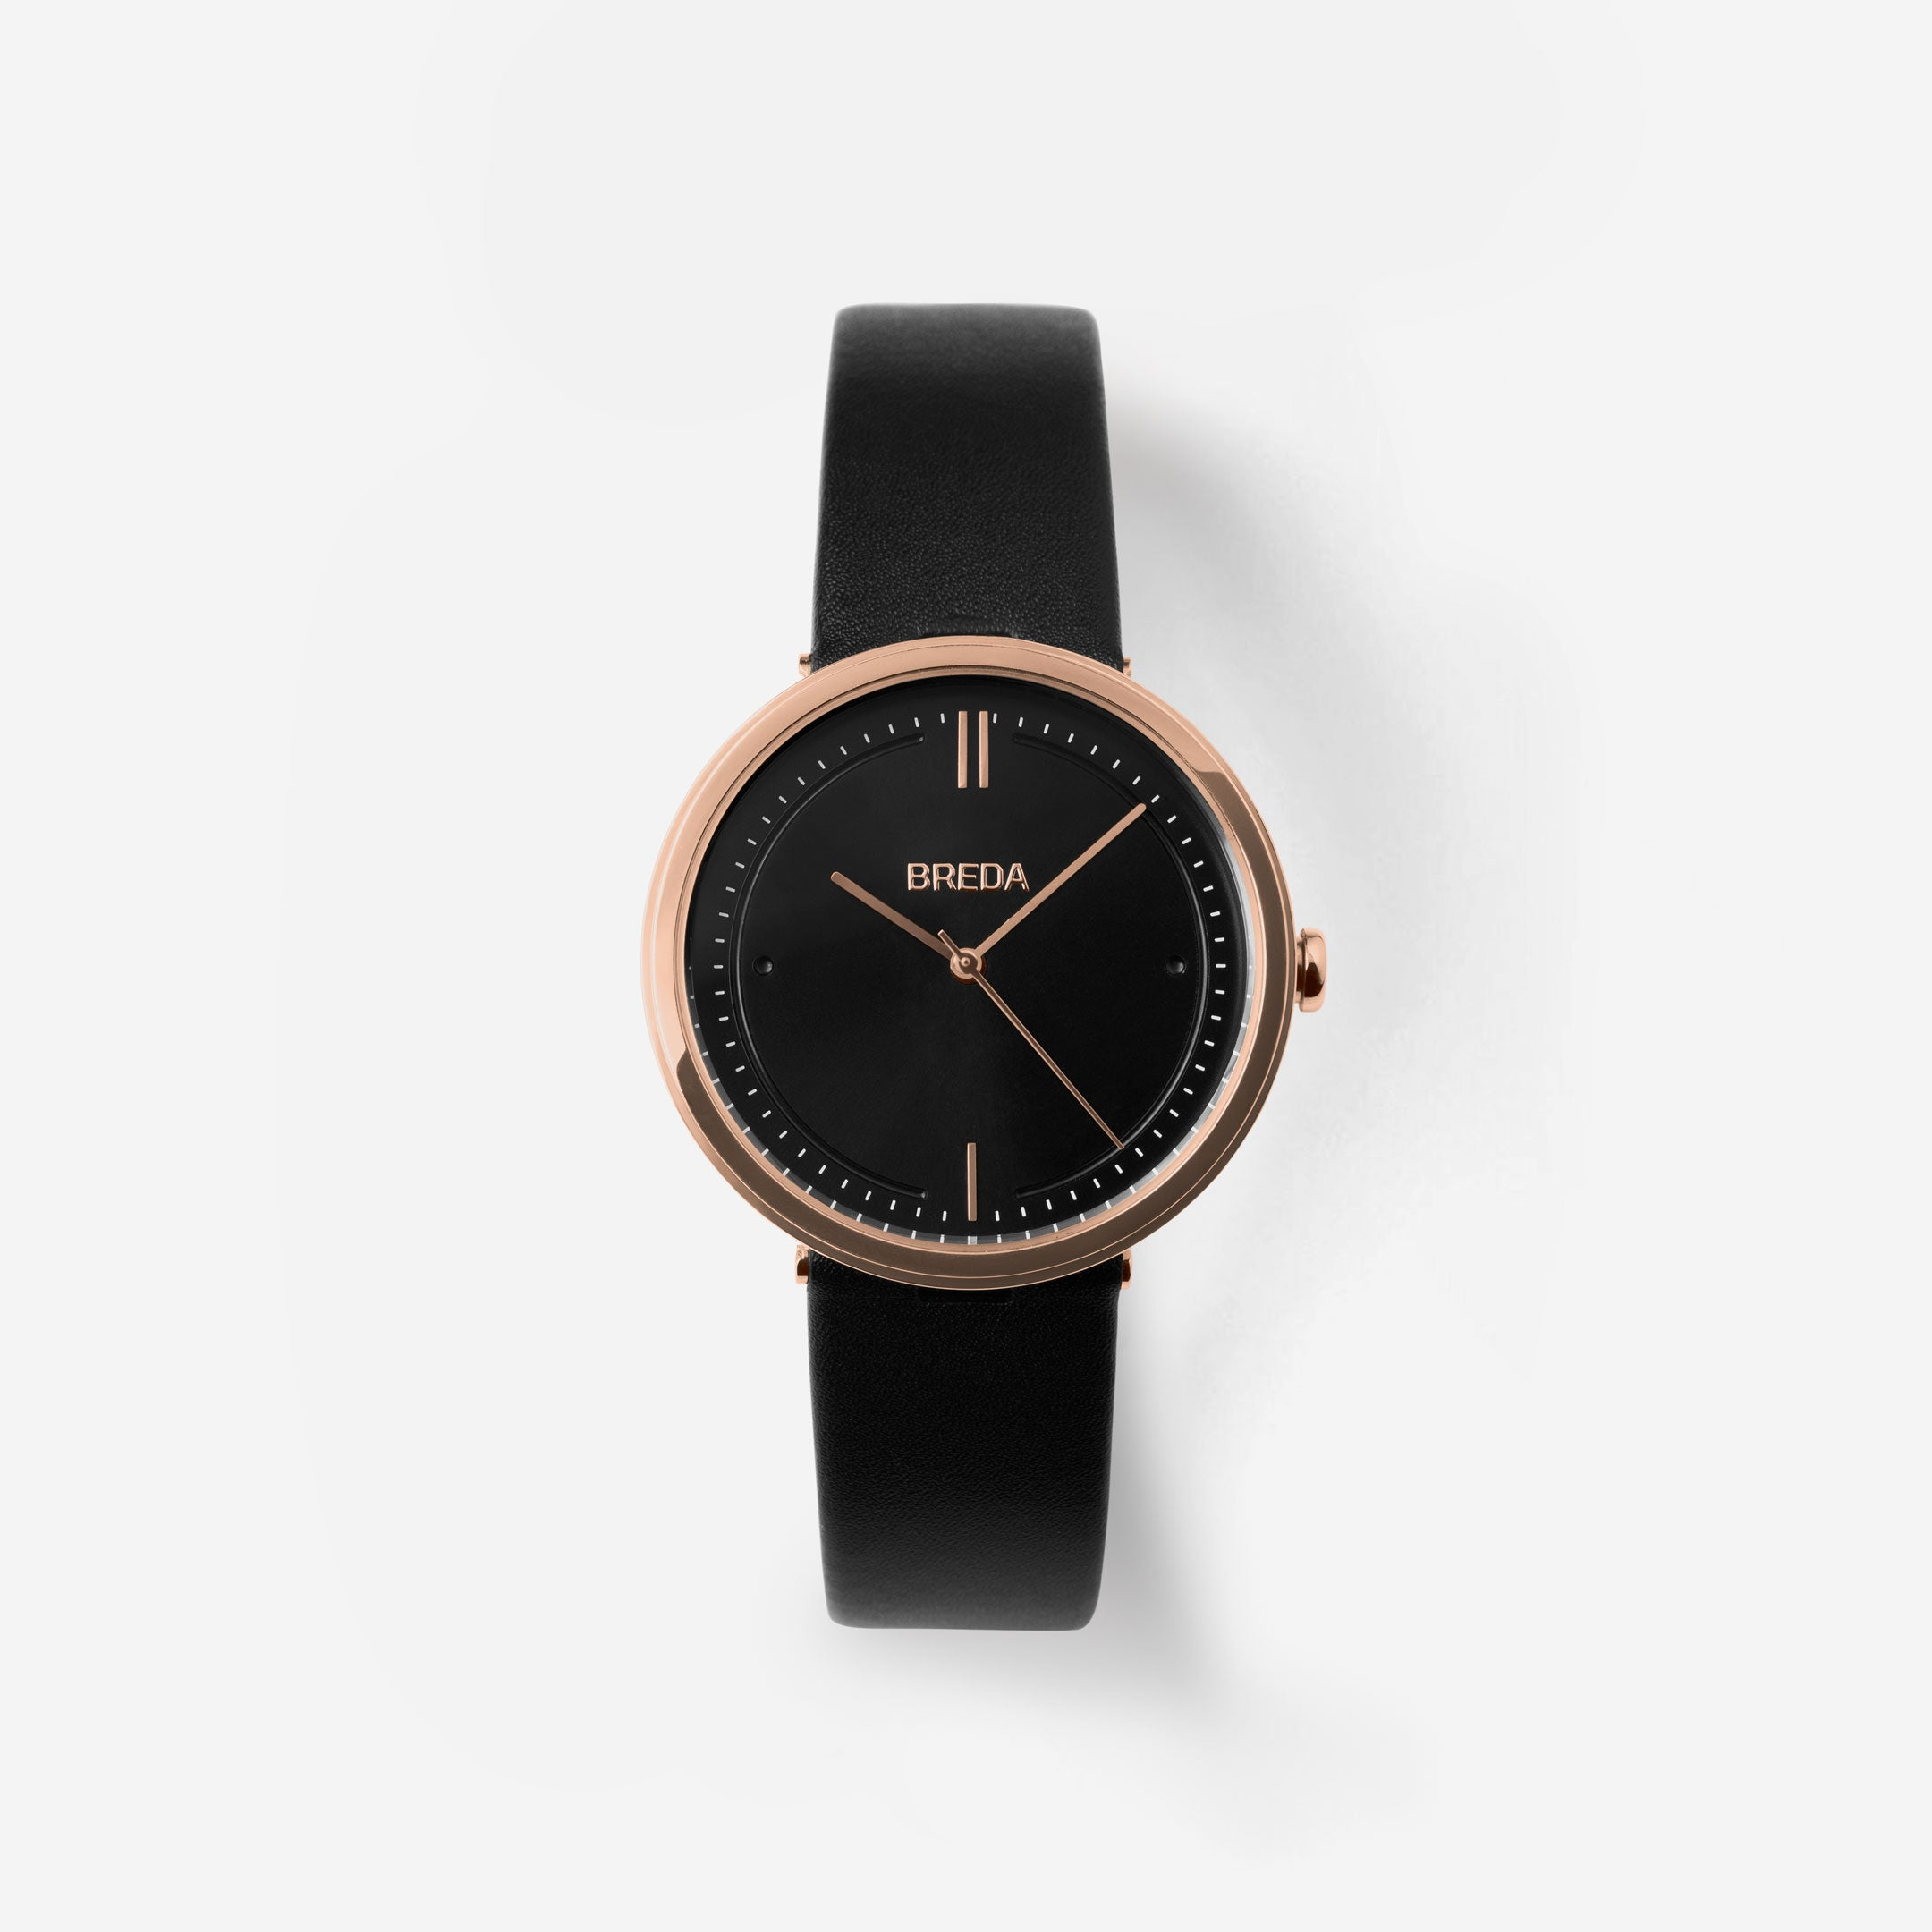 //cdn.shopify.com/s/files/1/0879/6650/products/breda-agnes-1733b-rosegold-black-leather-watch-front_1024x1024.jpg?v=1522789001